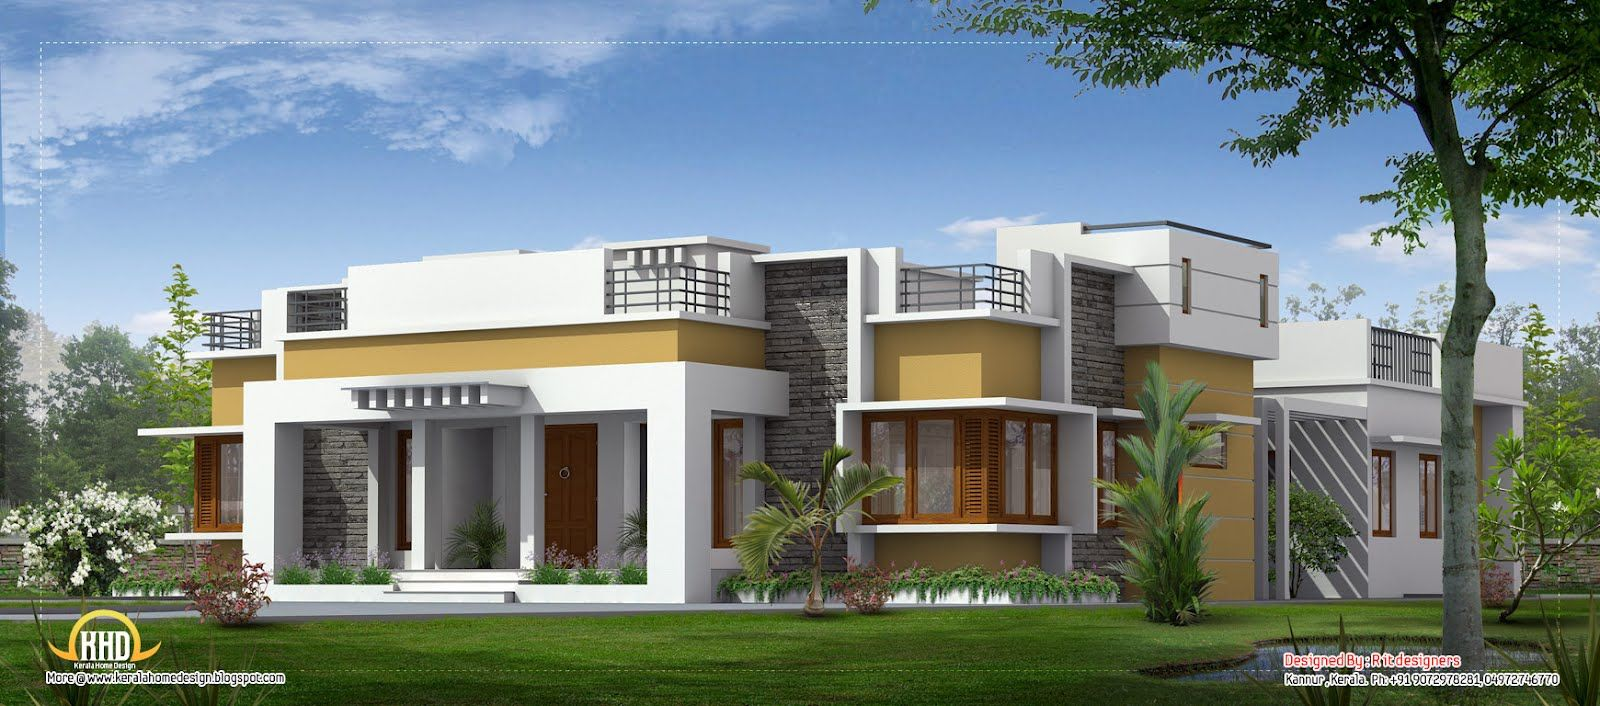 Single level designer home single floor house plans for Single floor home design